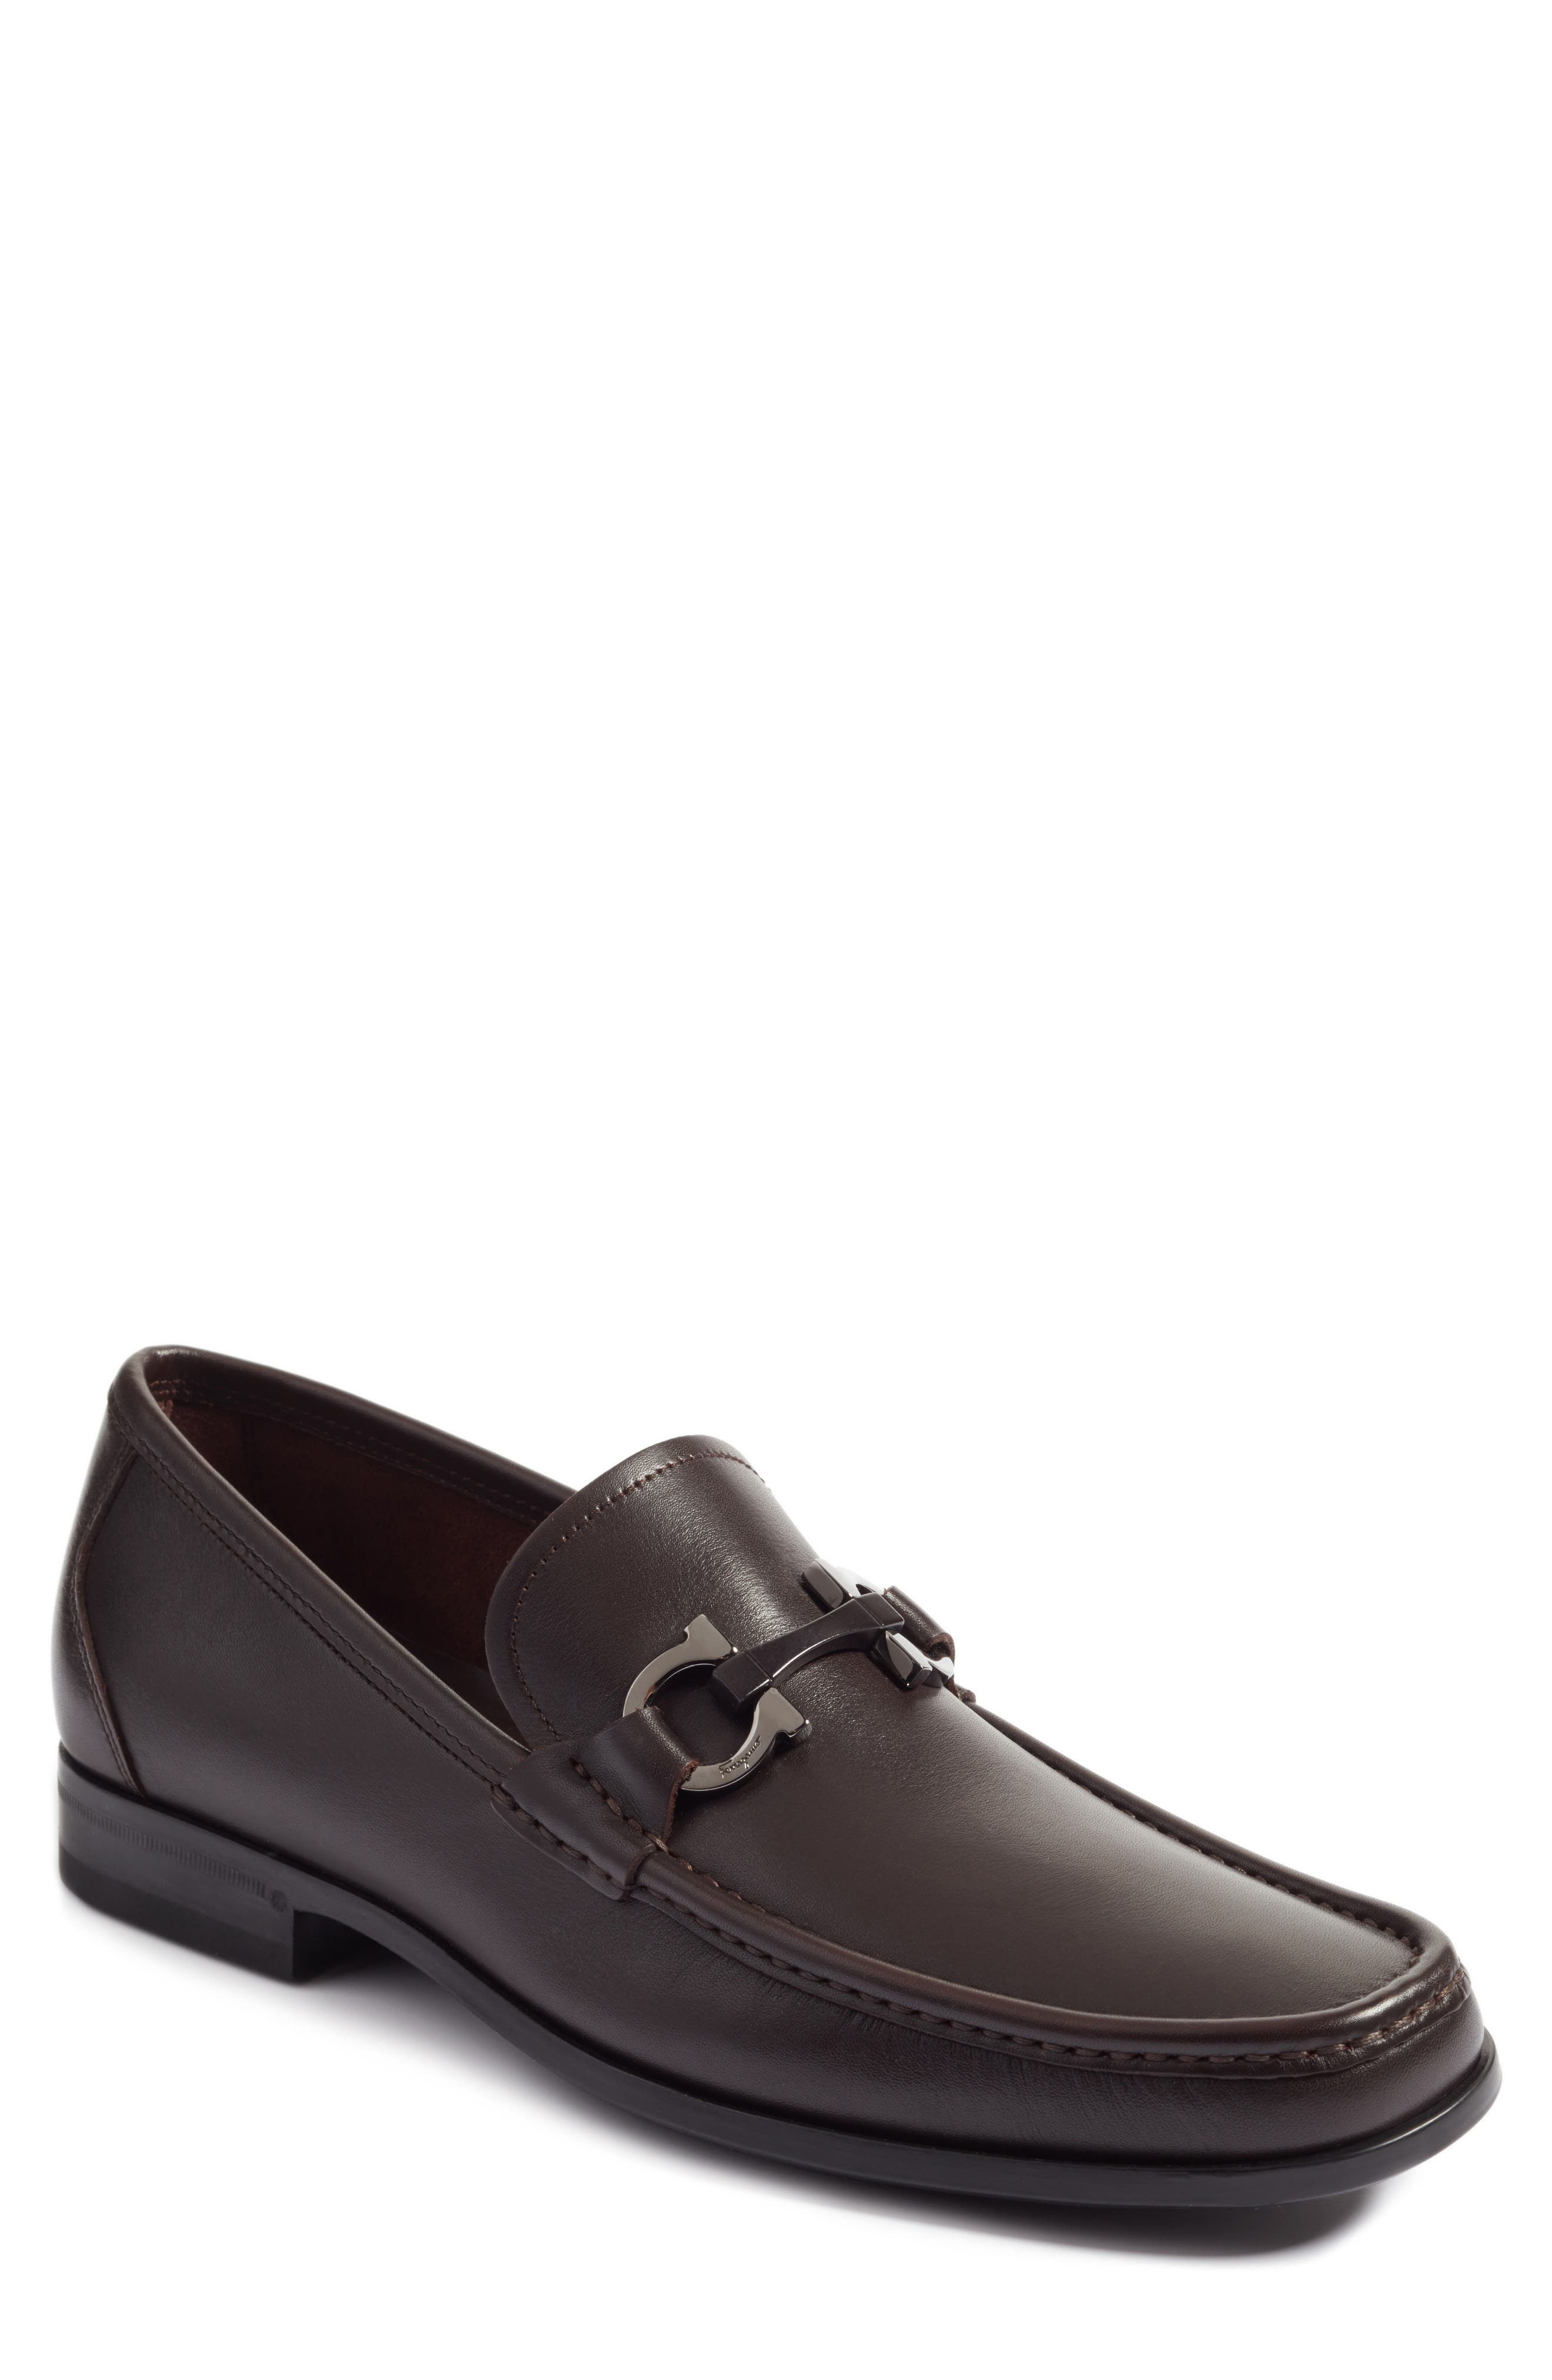 Alternate Image 1 Selected - Salvatore Ferragamo Grandioso Bit Loafer (Men)